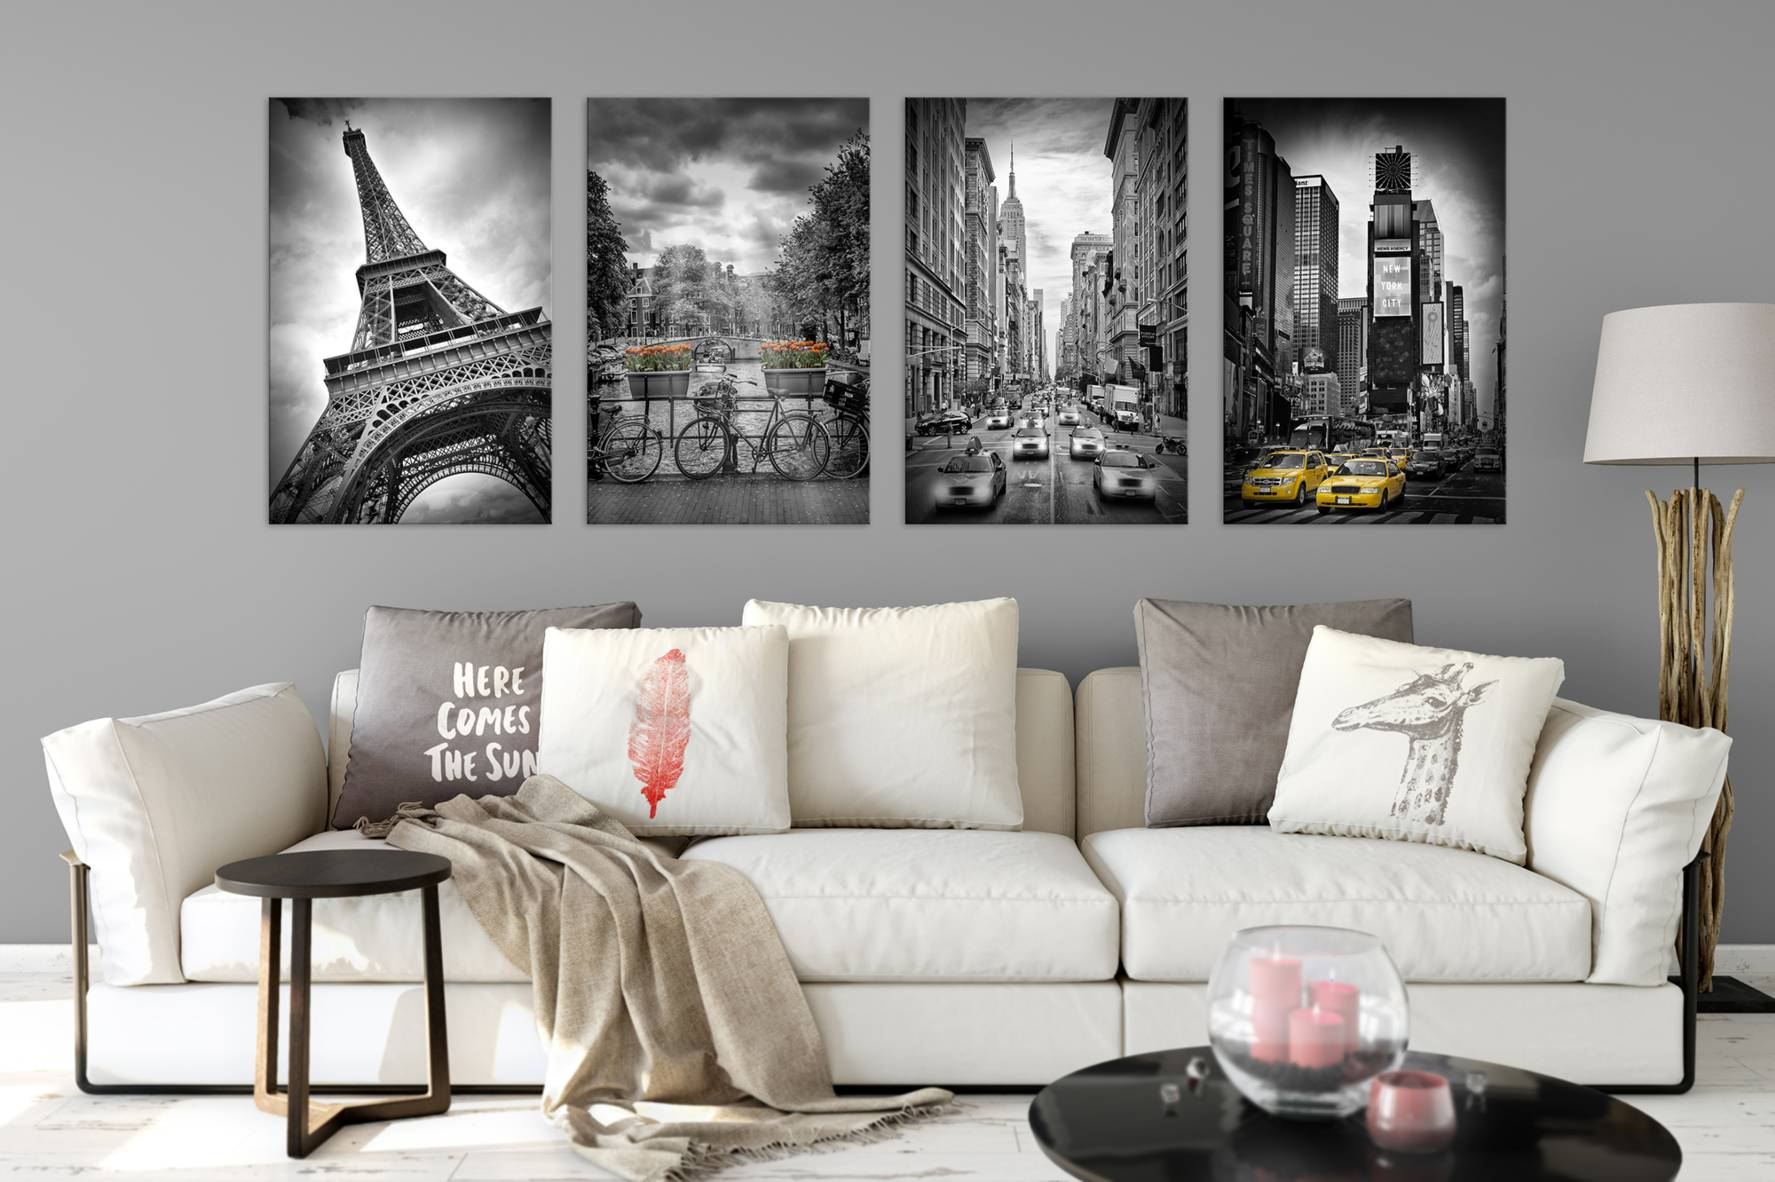 Black&White vs. Colorkey. Lovely wall art mix! Visit my collections at Fine Art America!